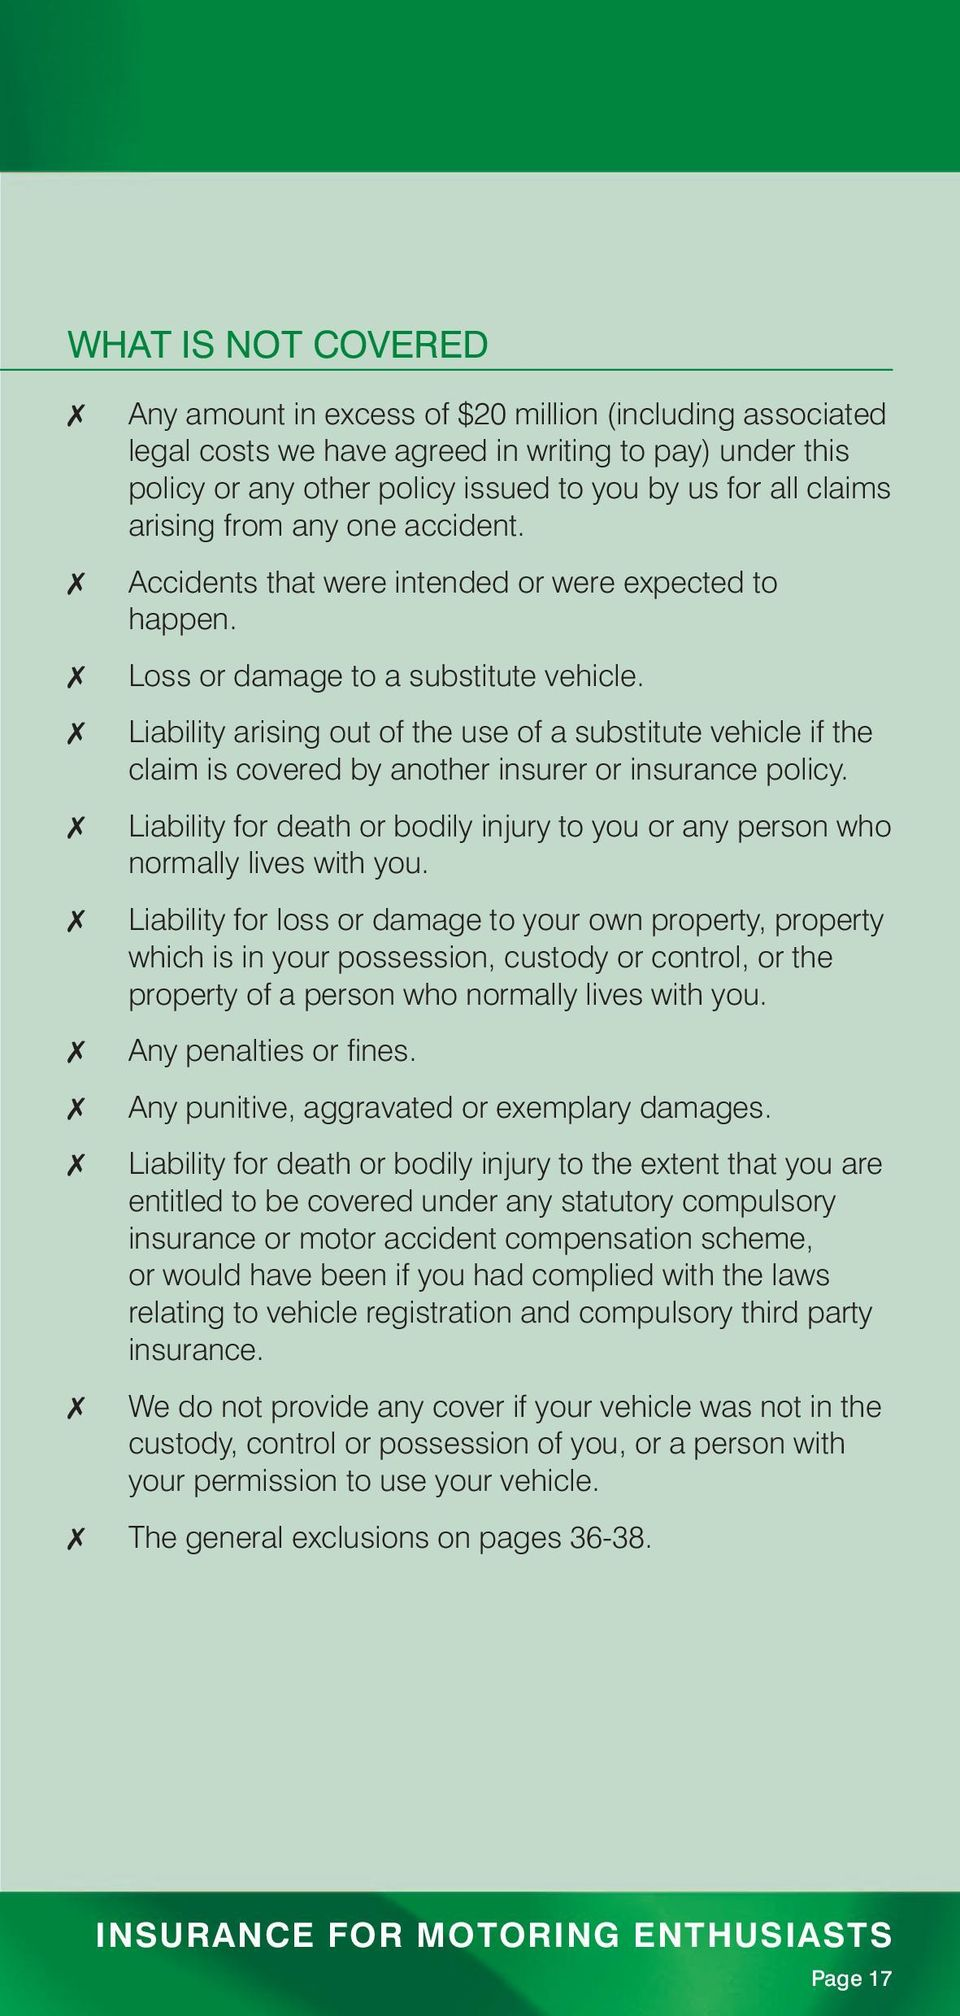 Liability arising out of the use of a substitute vehicle if the claim is covered by another insurer or insurance policy.